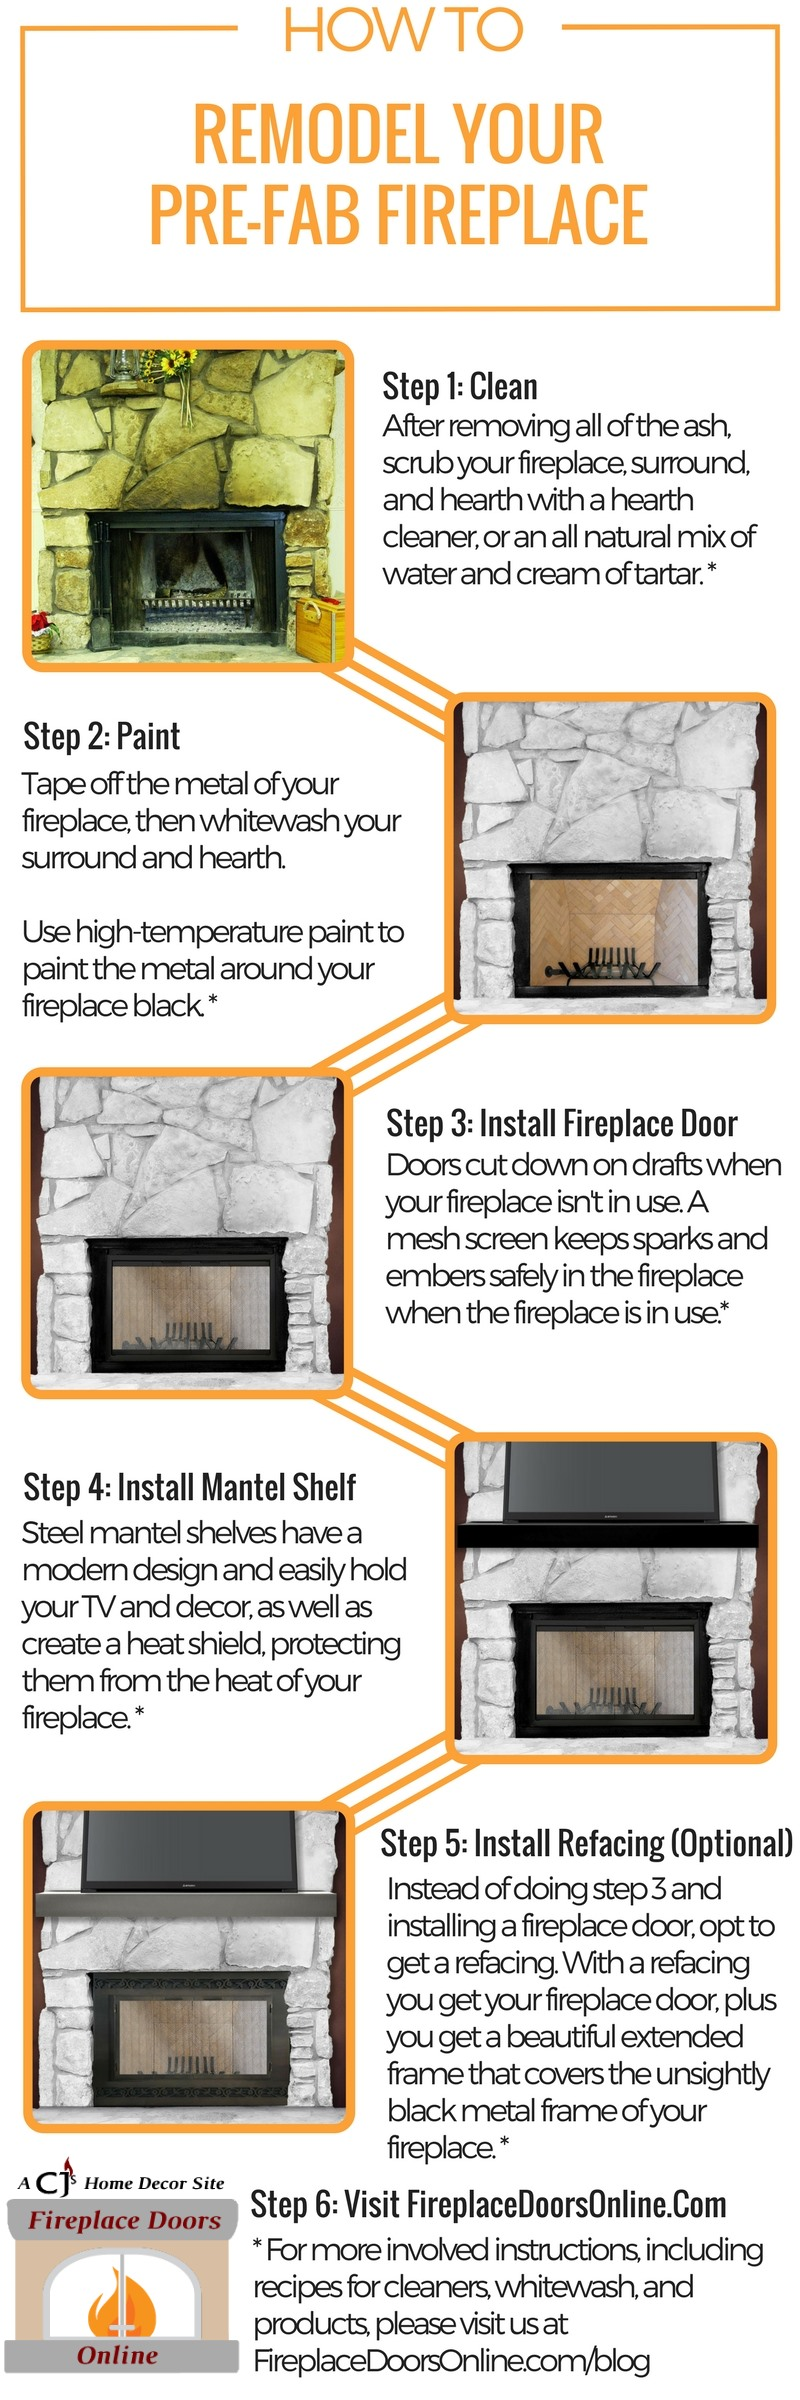 How to remodel your pre-fab fireplace infographic!